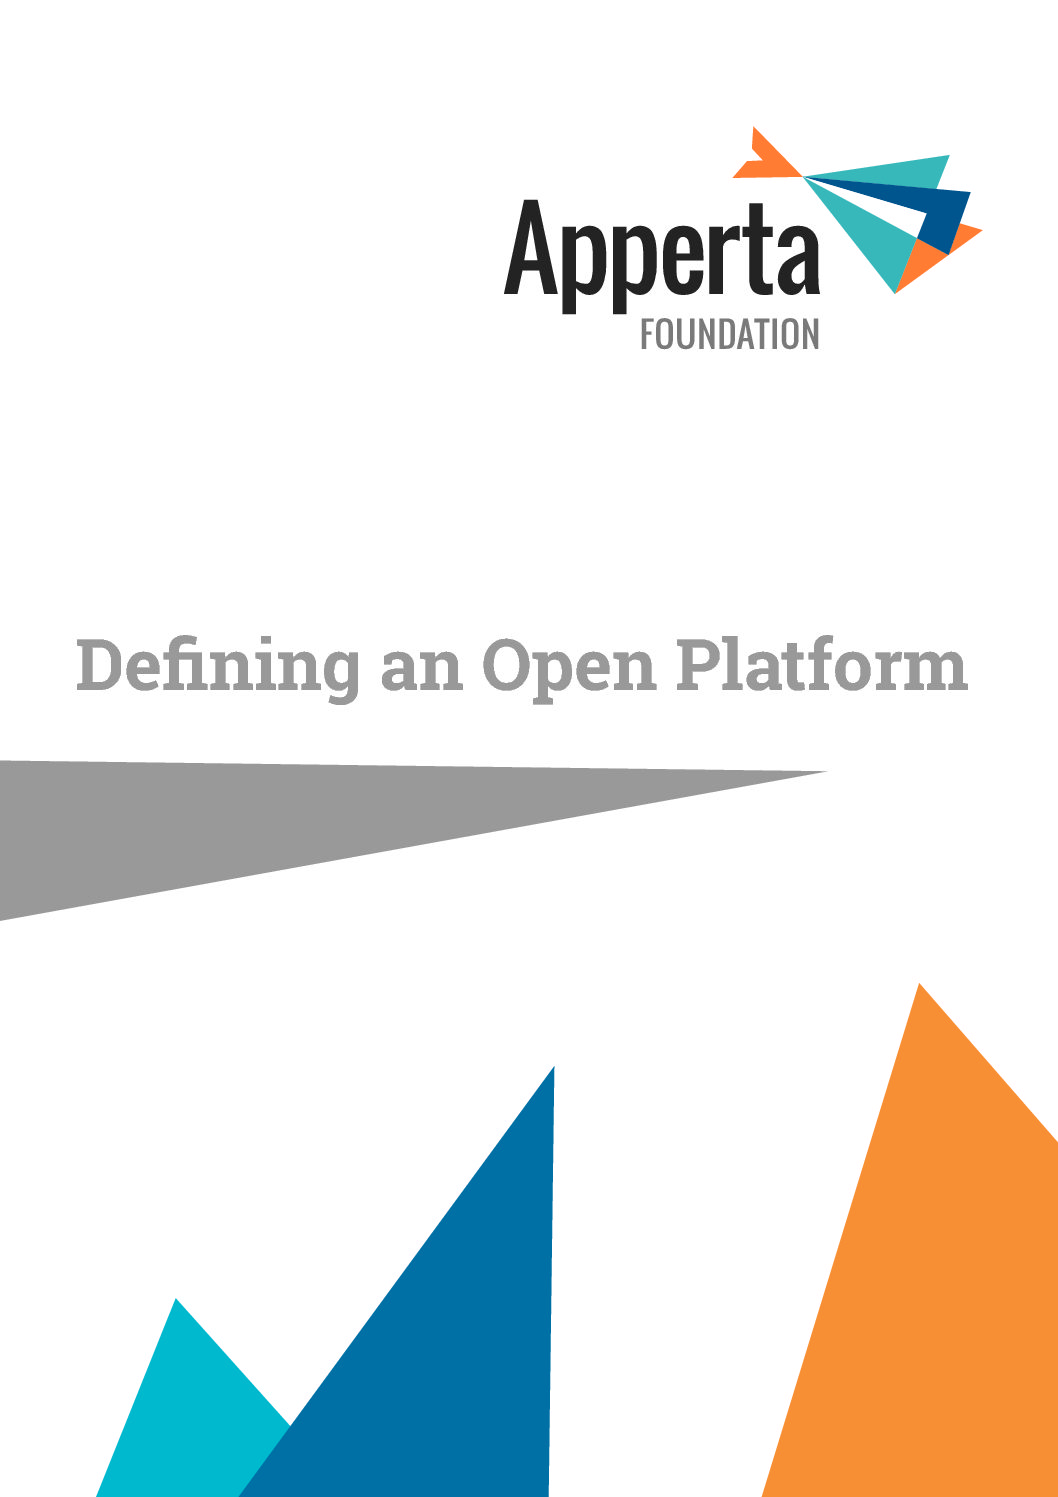 Apperta_Defining_an_Open_Platform_SP